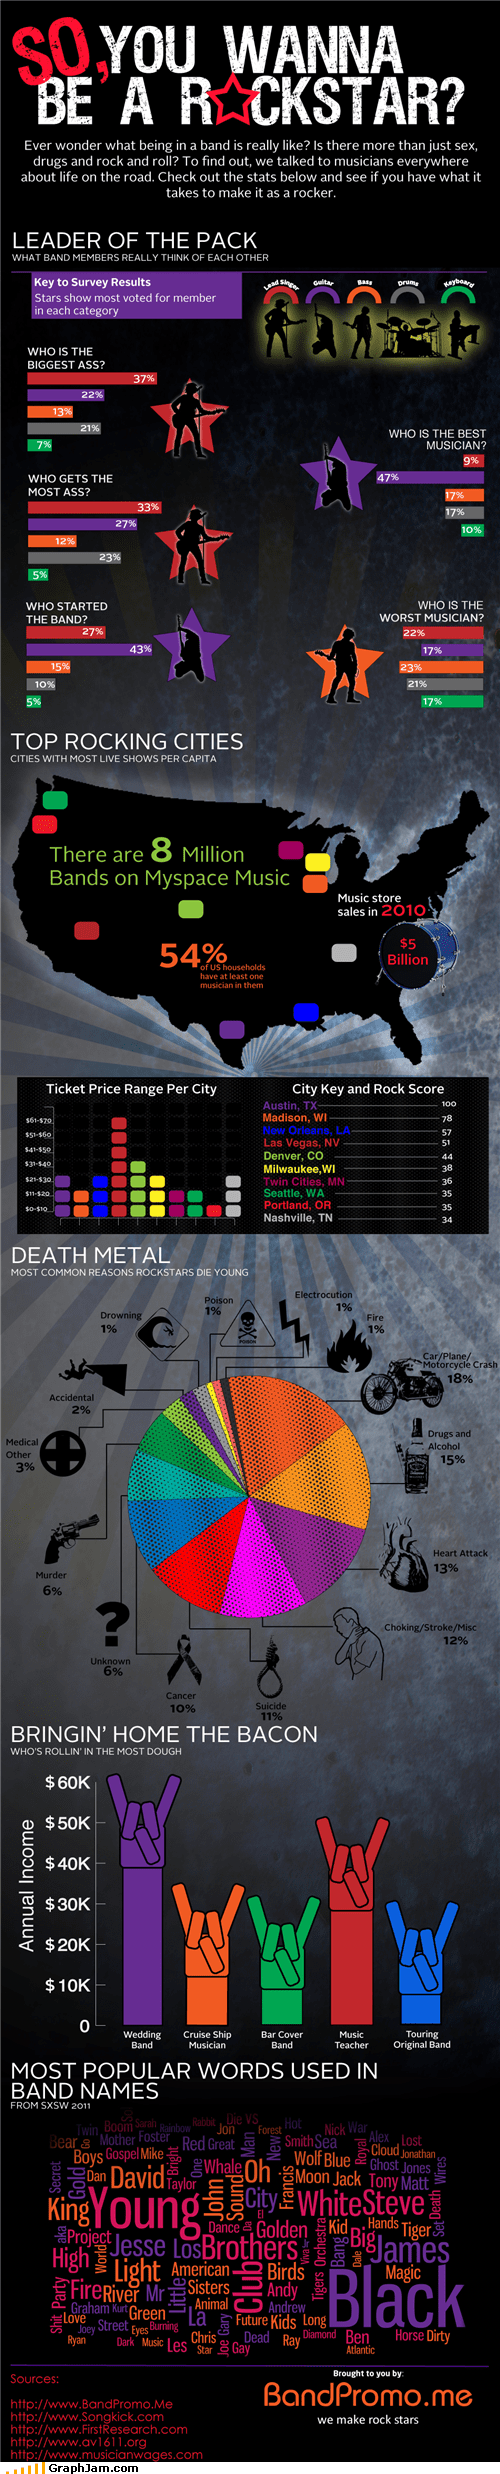 band infographic rock star rockstar Statistics - 4827198208